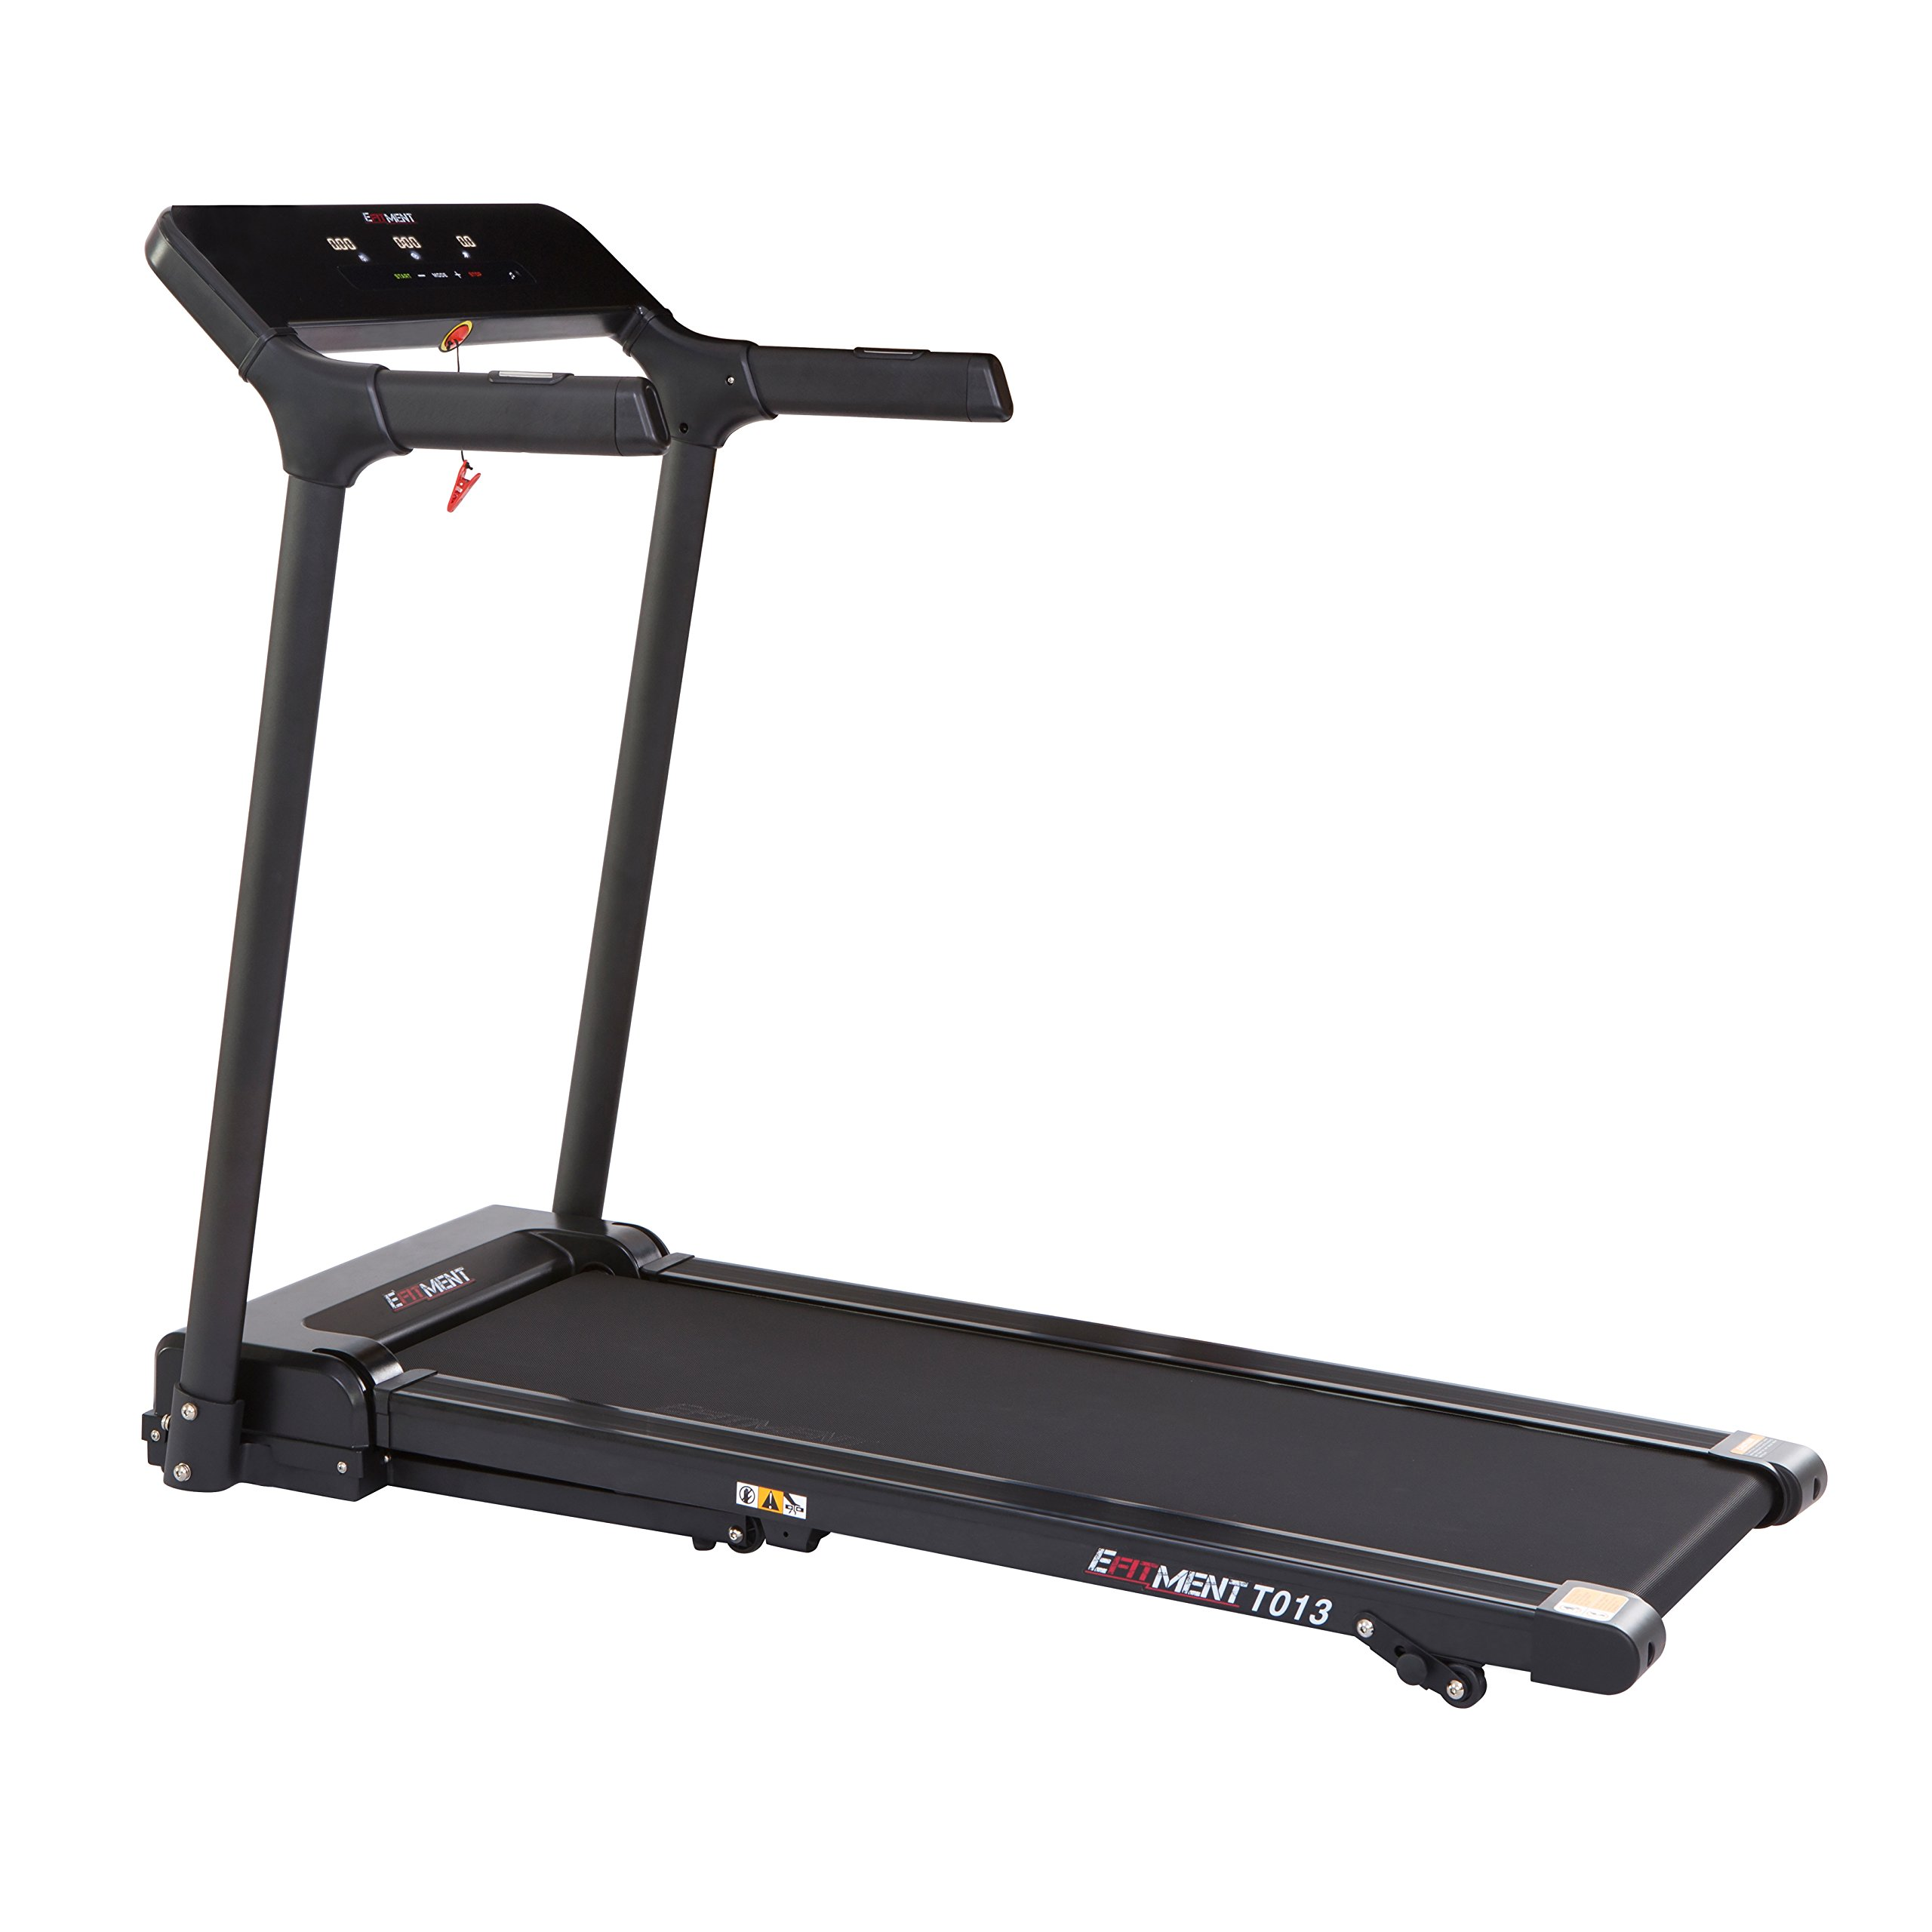 Slimline Motorized Treadmill with Bluetooth, Folding and Incline for Running & Walking by EFITMENT - T013 by EFITMENT